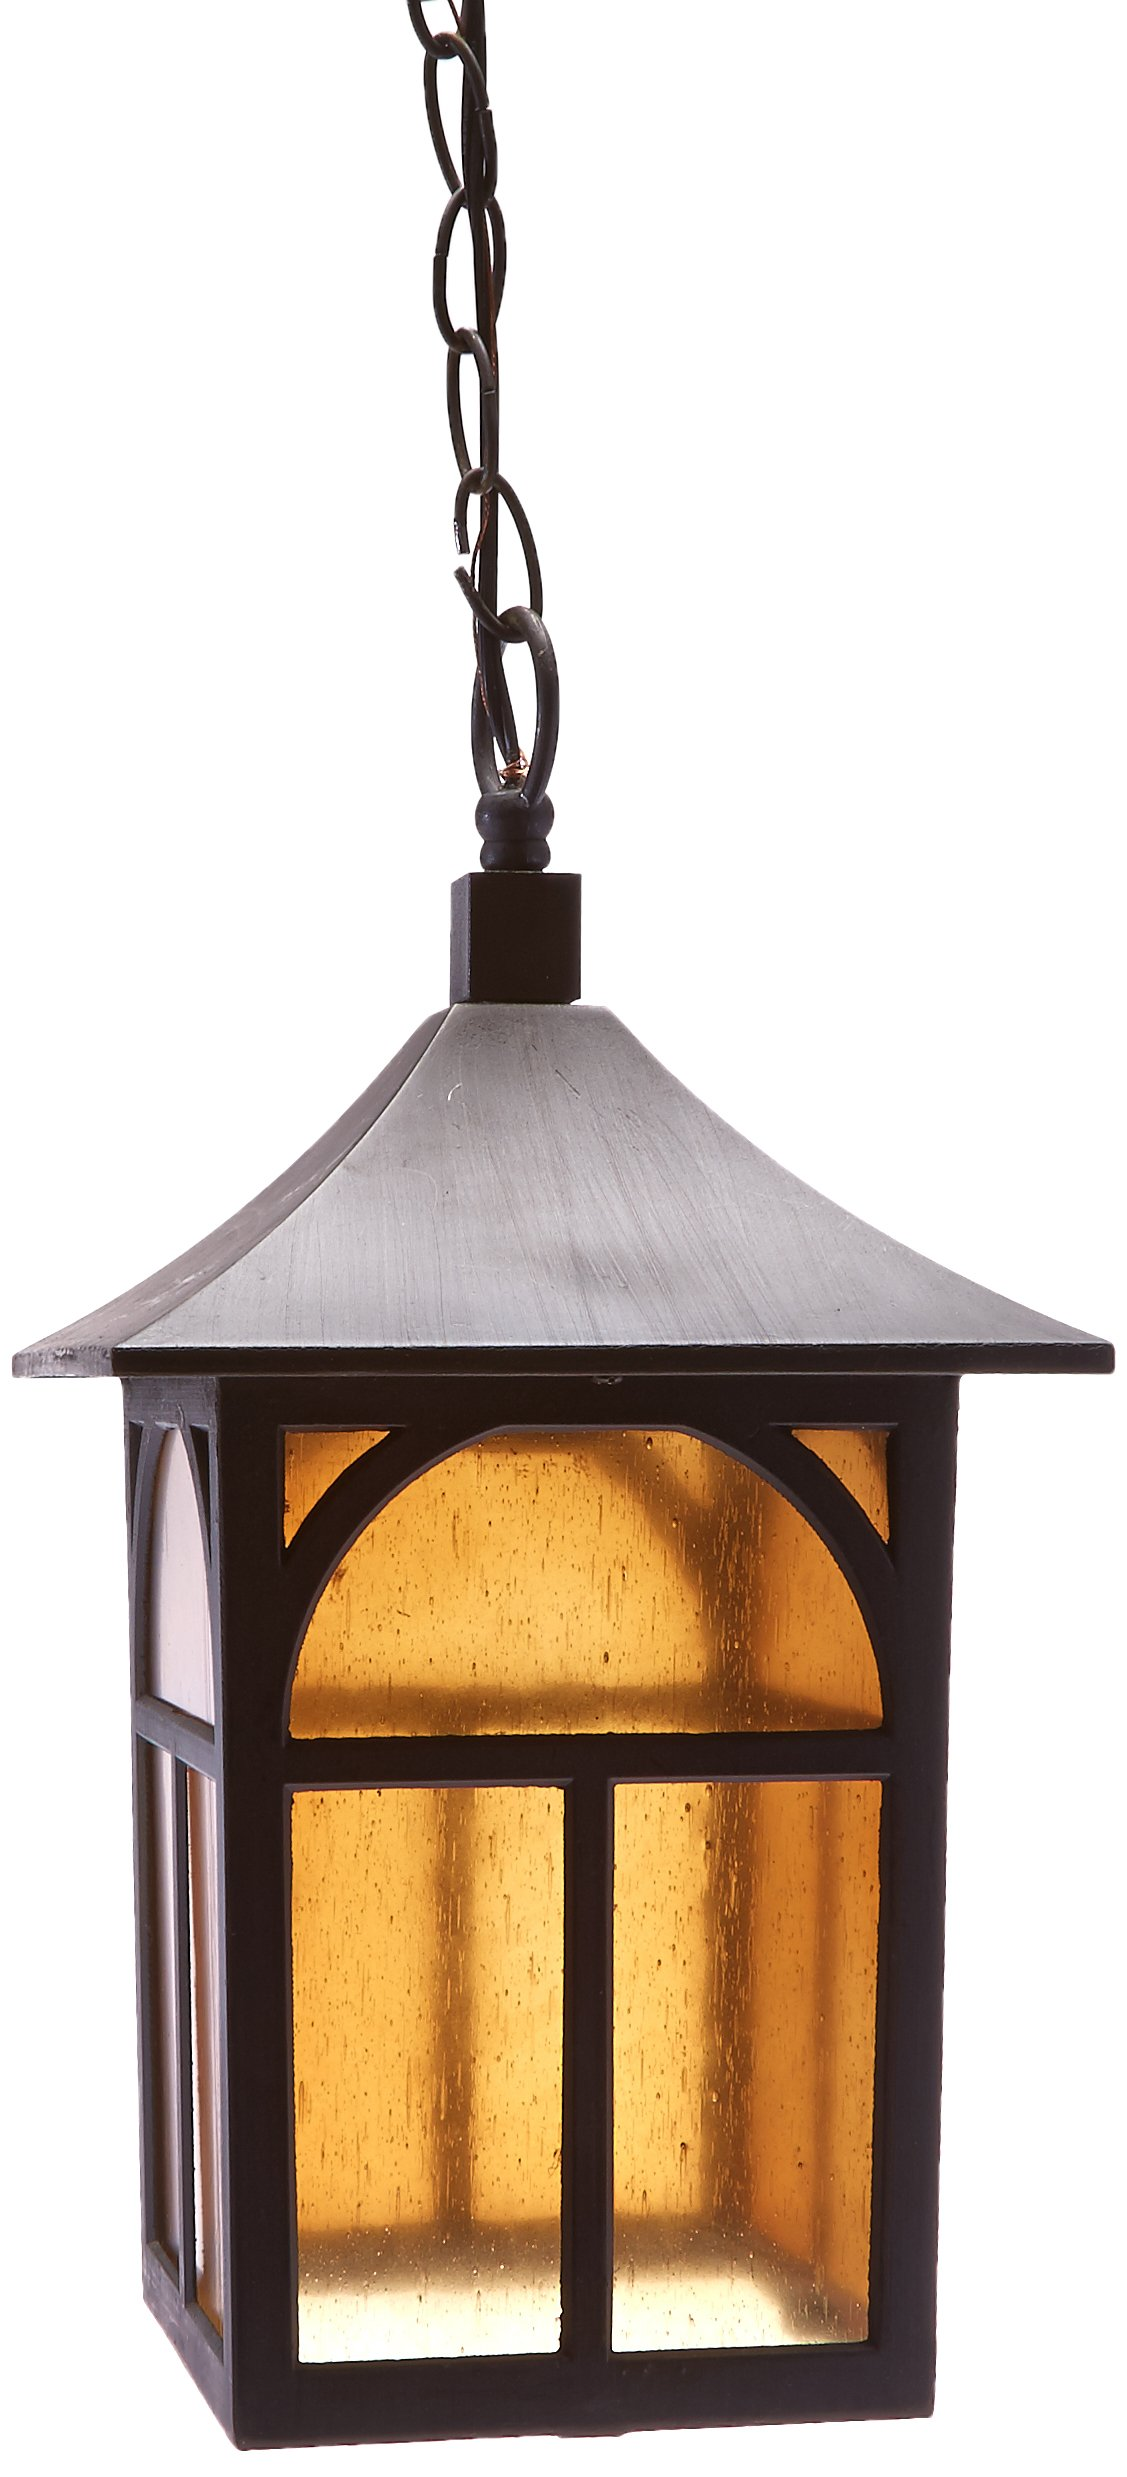 Galaxy Lighting 311384ORB Chain Hung Outdoor Pendant, Oil Rubbed by Galaxy Lighting